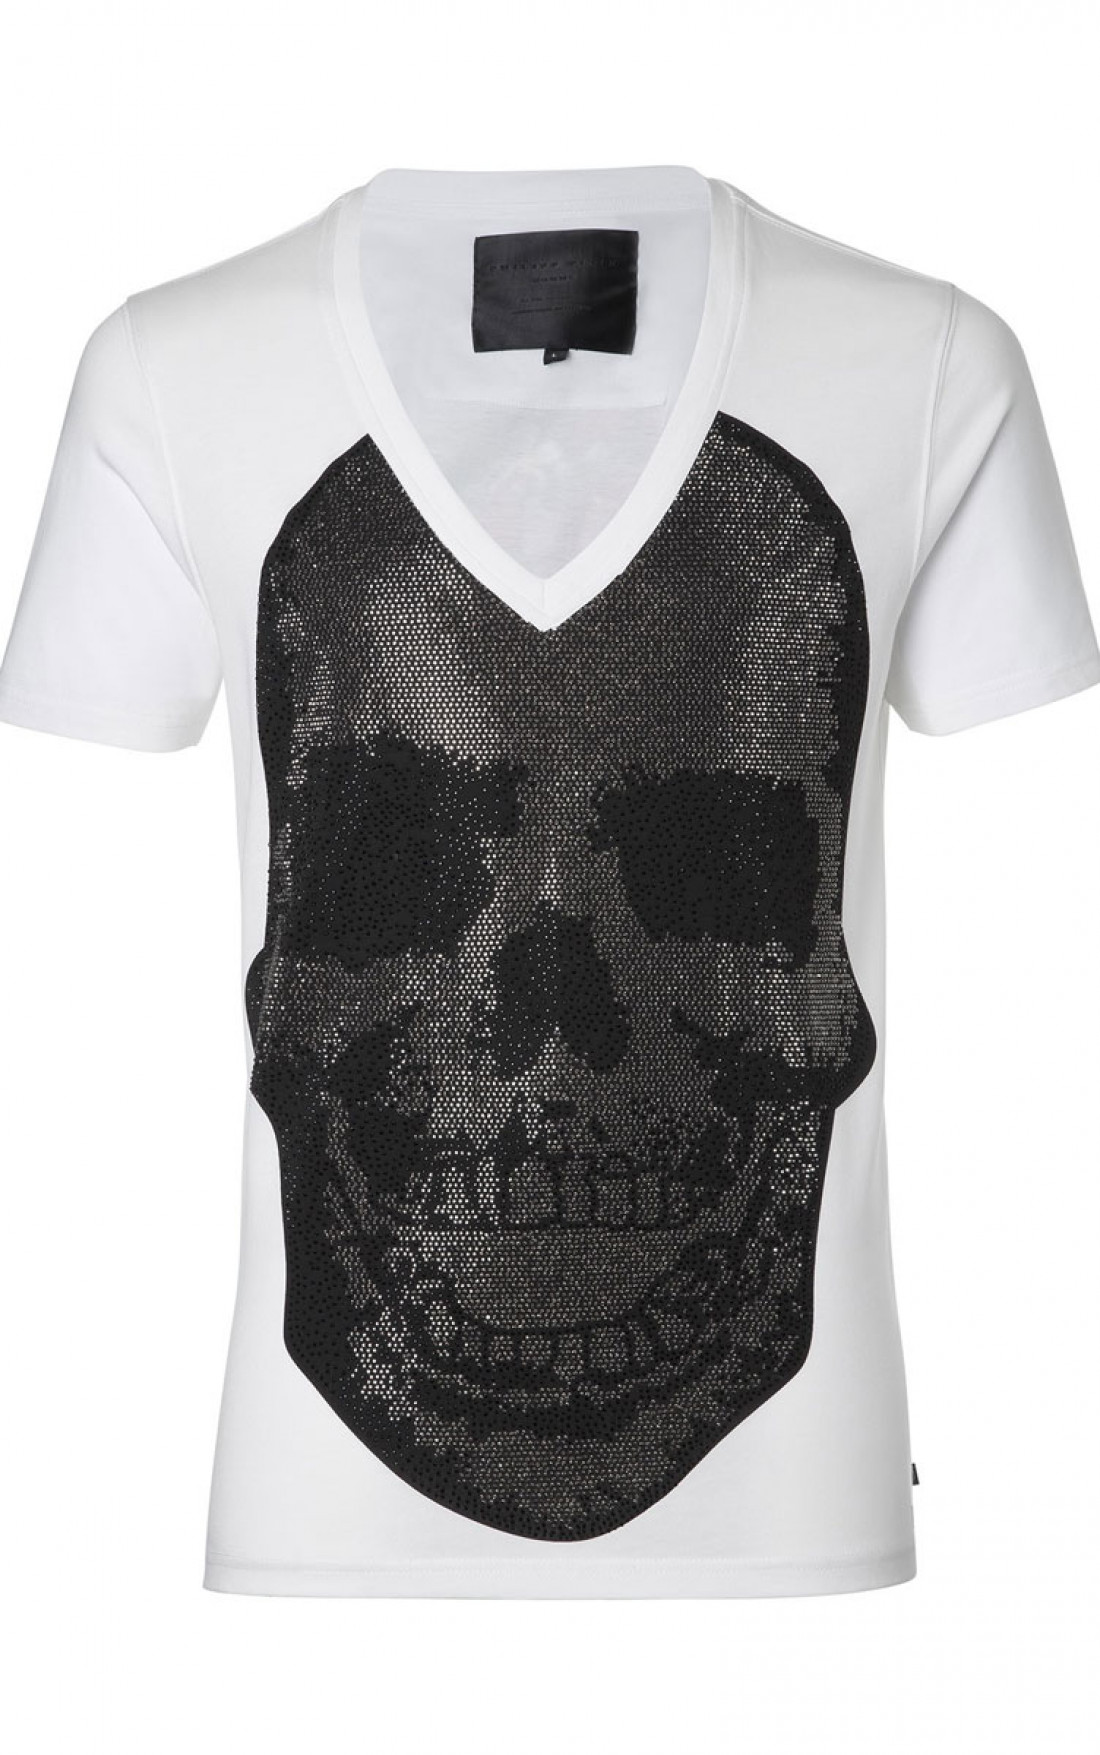 philipp plein t shirts mens essential white t shirt mens t shirts online boudi fashion. Black Bedroom Furniture Sets. Home Design Ideas